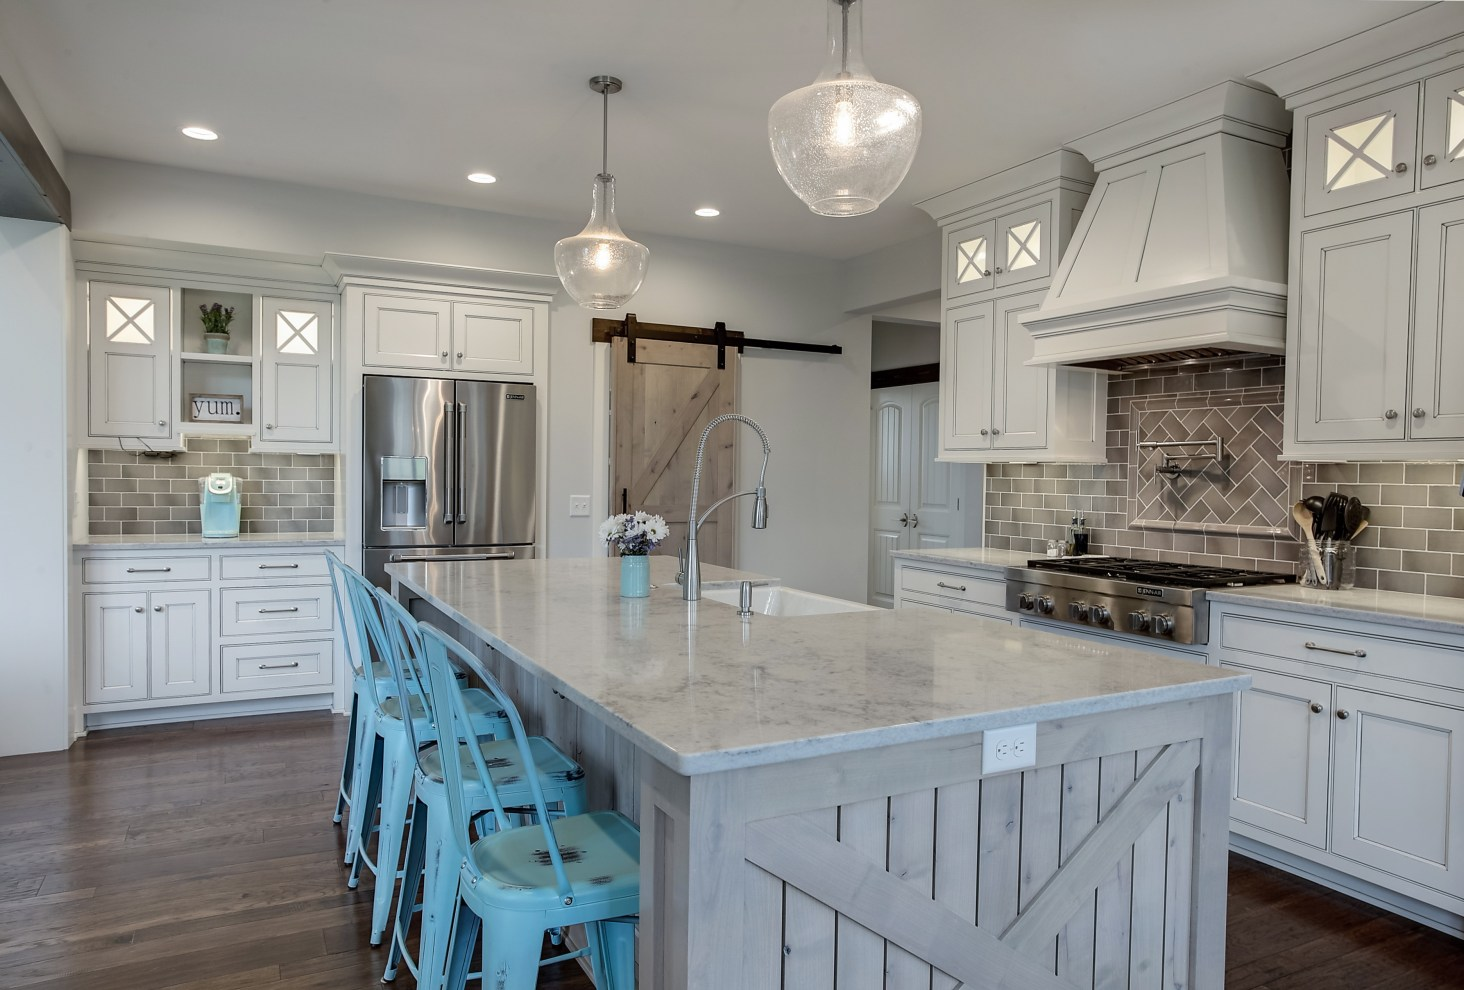 Modern Country Farmhouse Kitchen In Gray, White And Turquoise